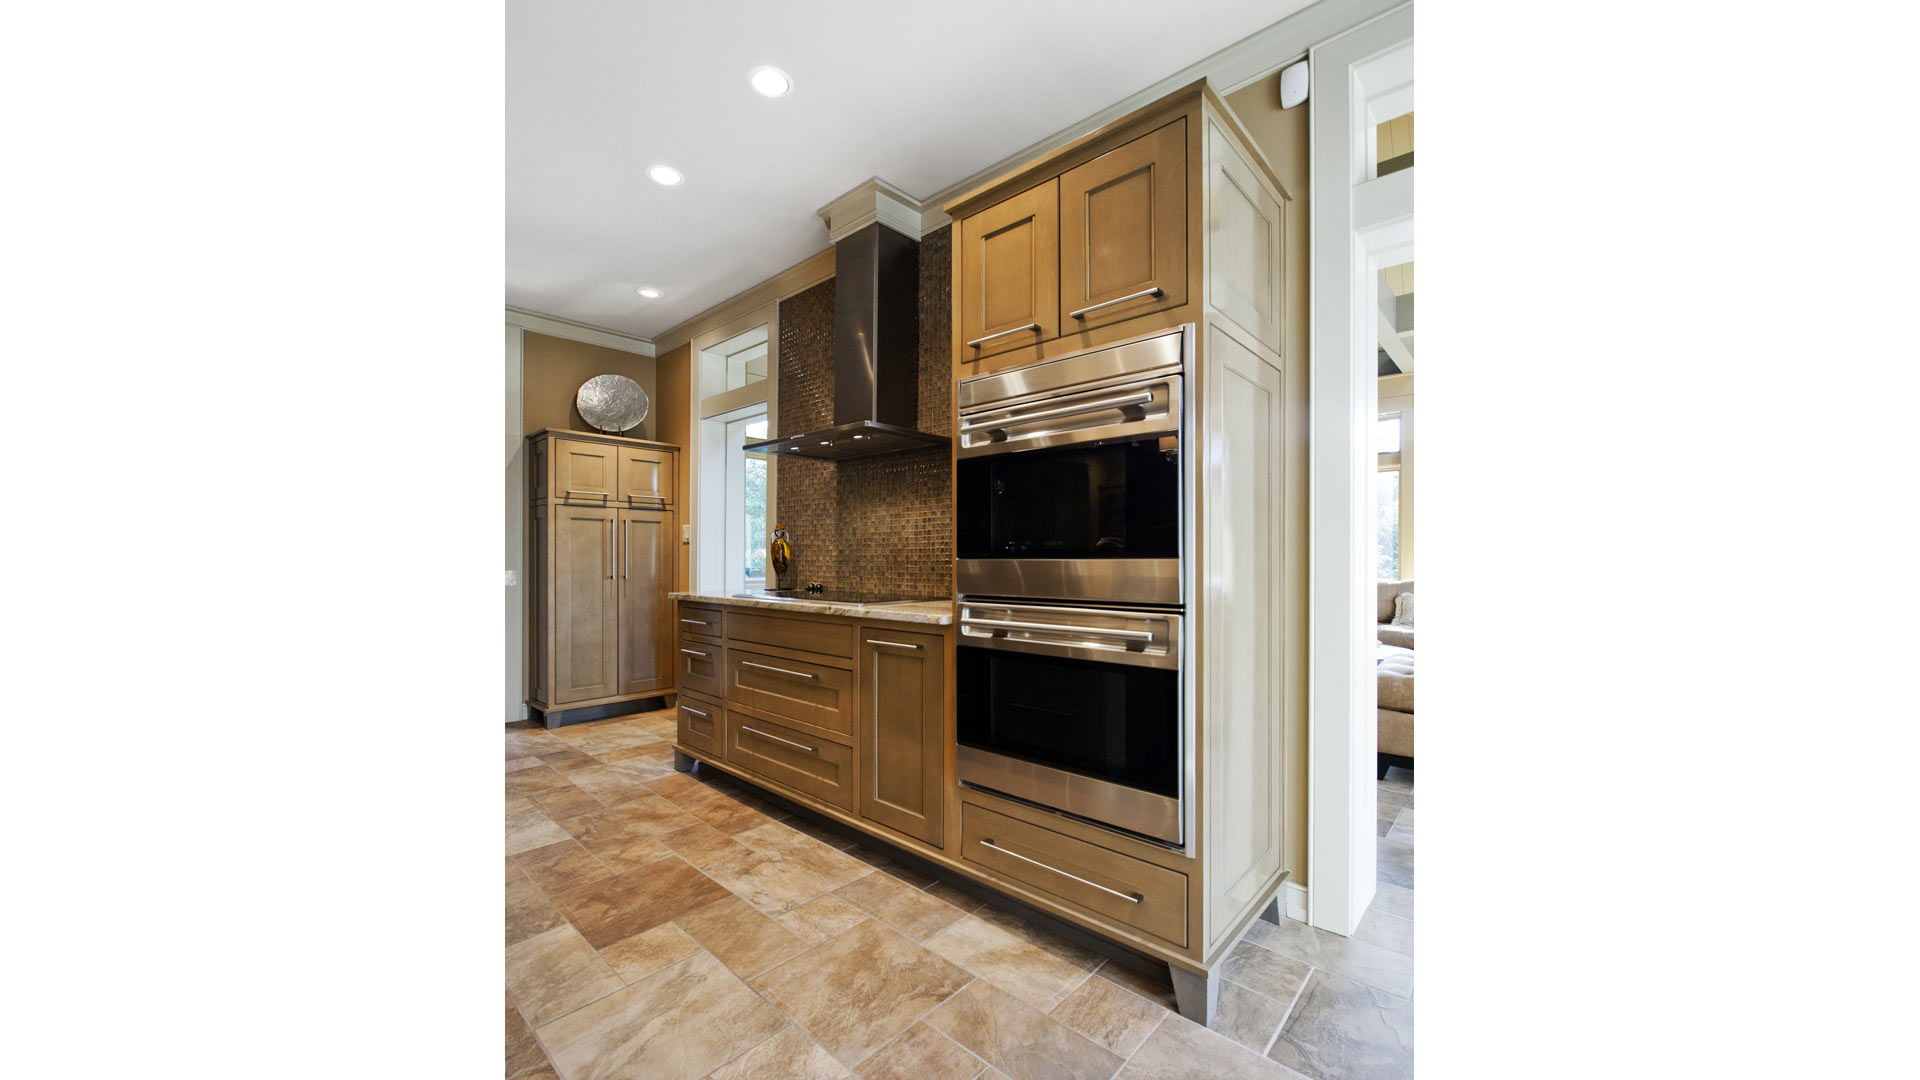 New kitchen details (stainless steel appliances and custom cabinetry) - Kitchen and Family Room Addition - Indianapolis, IN